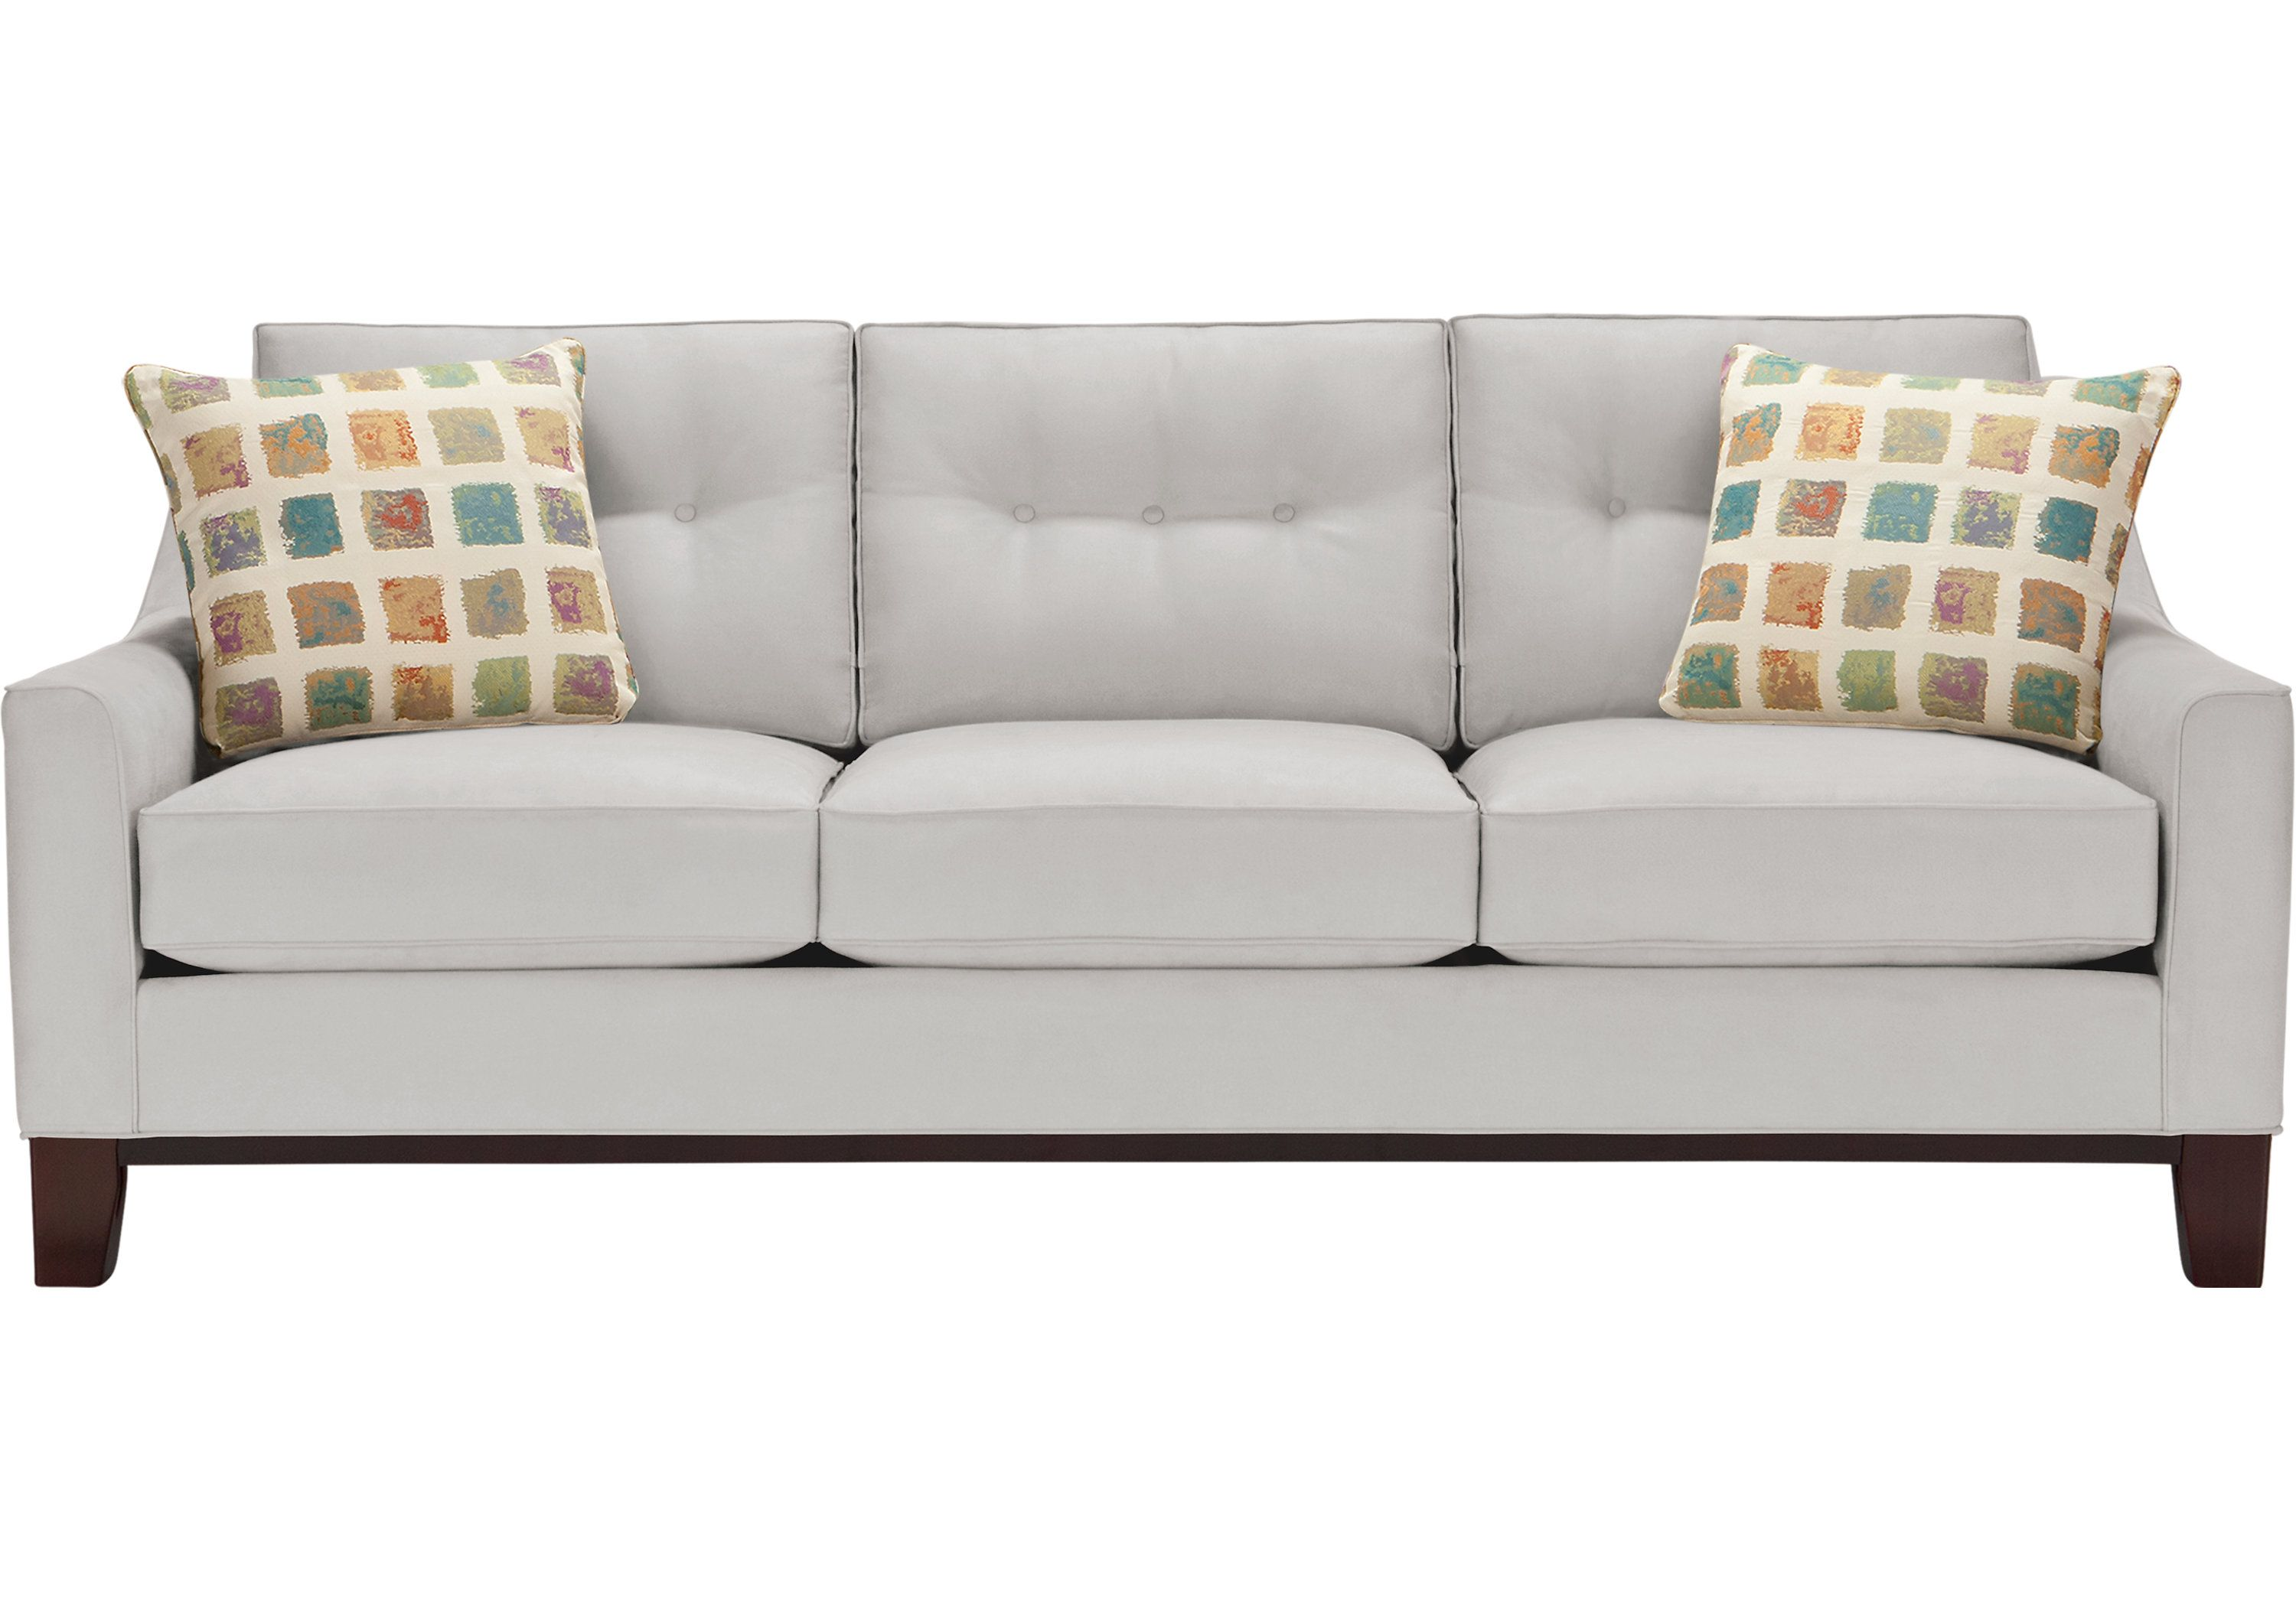 Picture Of Cindy Crawford Home Montclair Platinum Sofa From Sofas Furniture